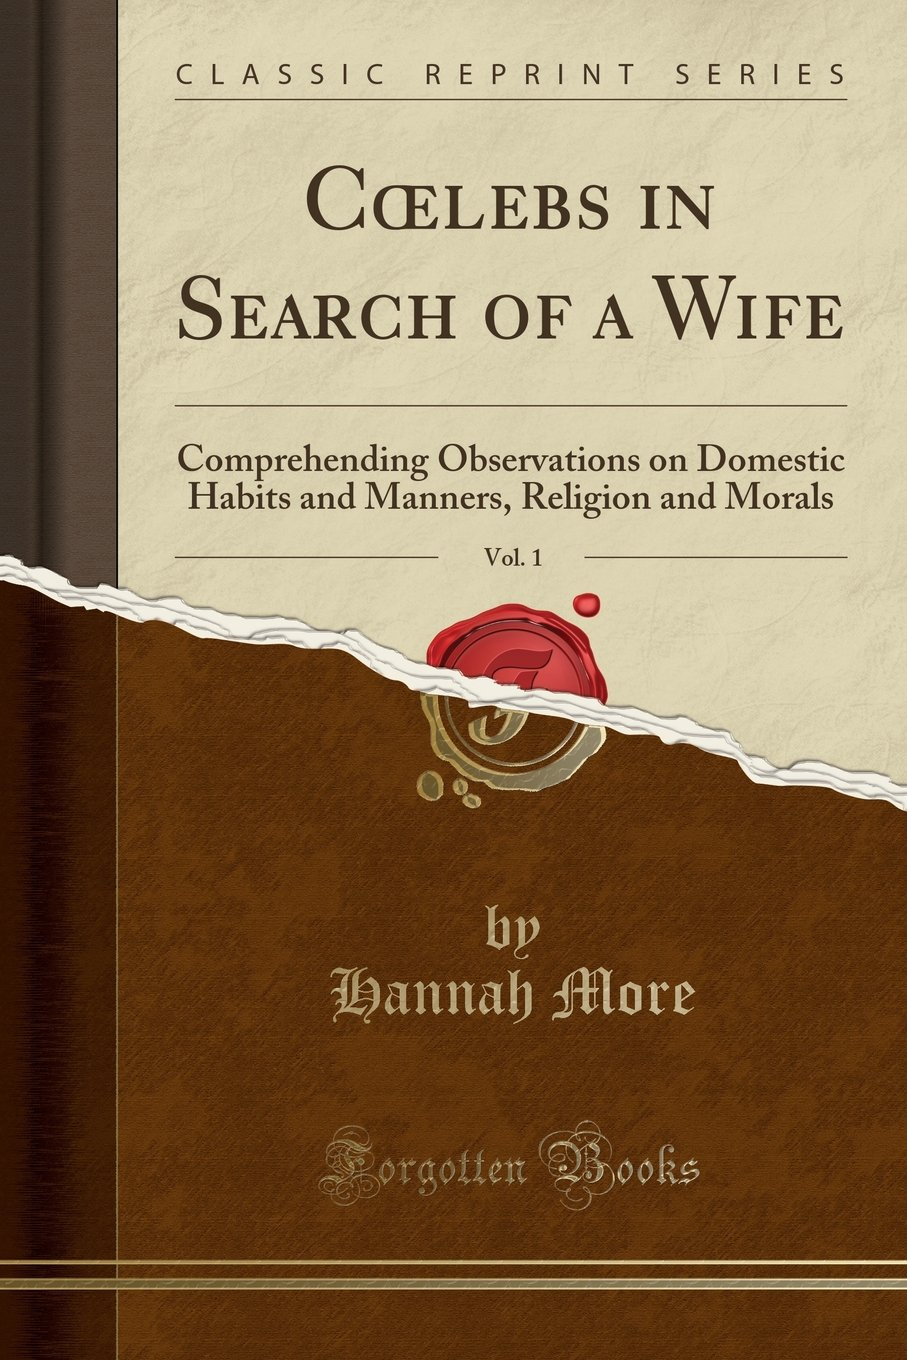 Download Cœlebs in Search of a Wife, Vol. 1: Comprehending Observations on Domestic Habits and Manners, Religion and Morals (Classic Reprint) ebook